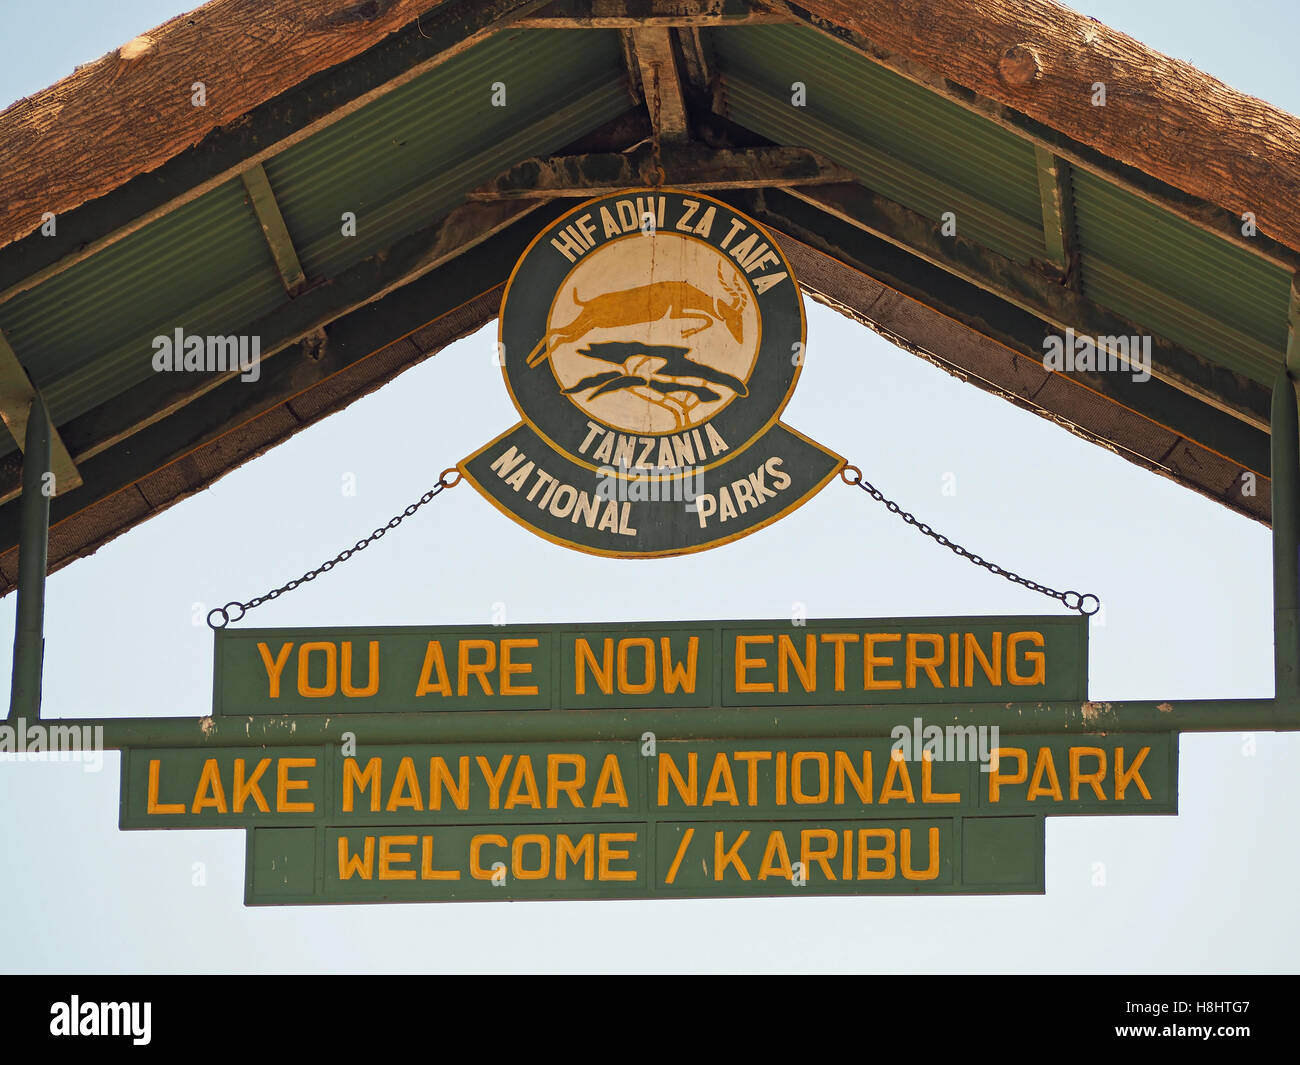 View looking up at the sign hanging over the entrance to the Lake Manyara National Park in Tanzania Africa - Stock Image